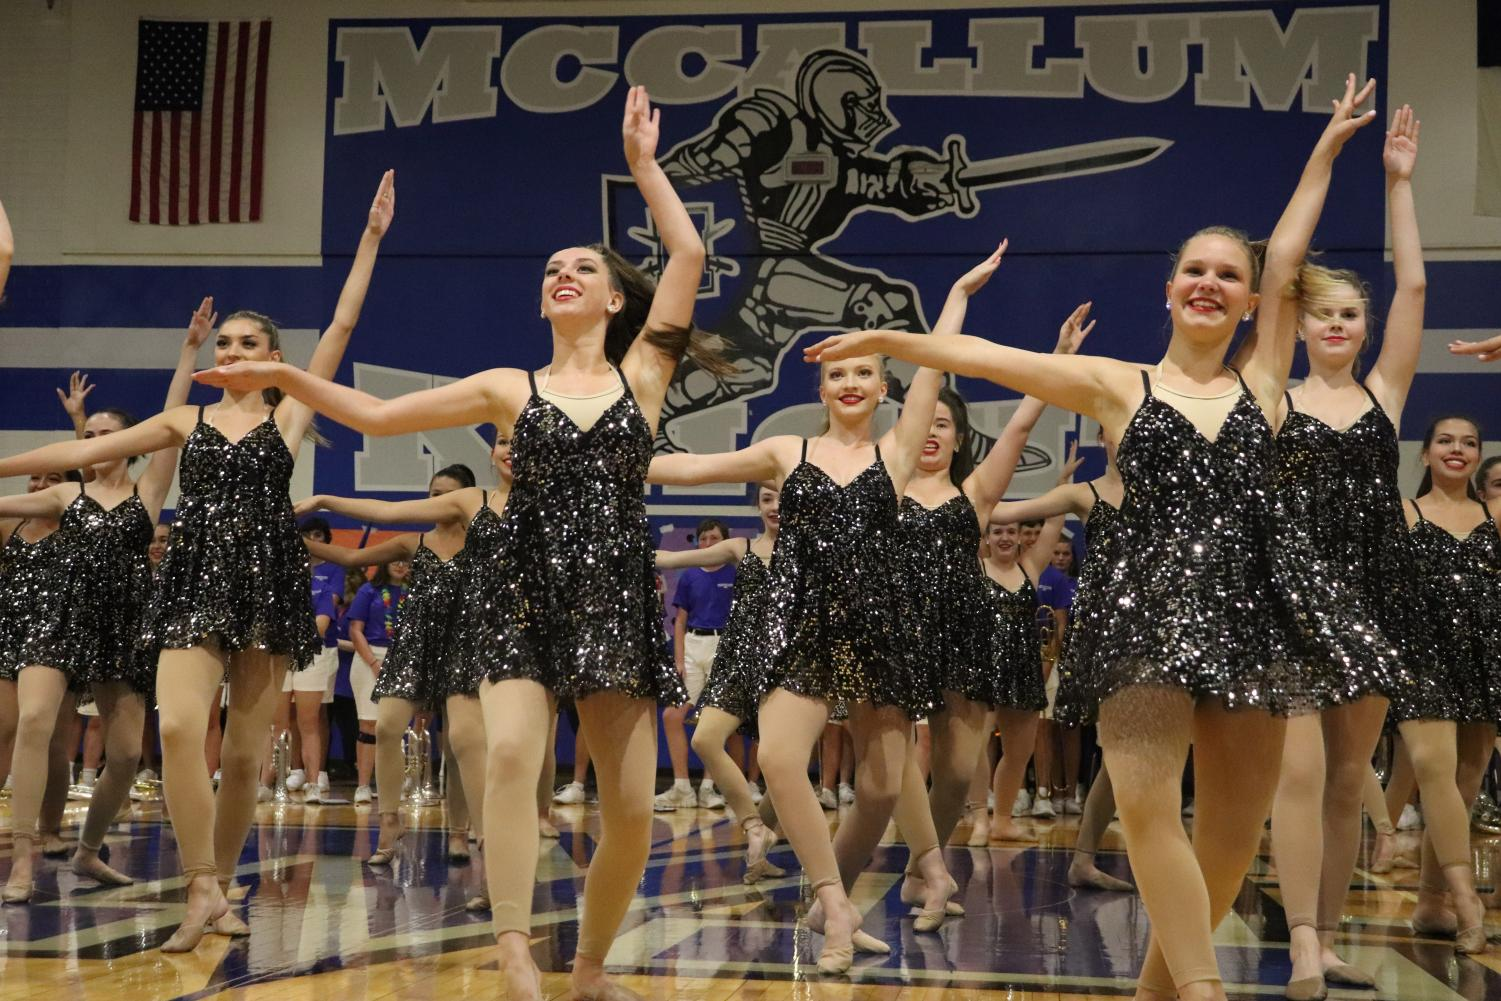 The Blue Brigade performs during the Taco Shack pep rally on Aug. 30 in the large gym. Photo by Gabby Sherwood.